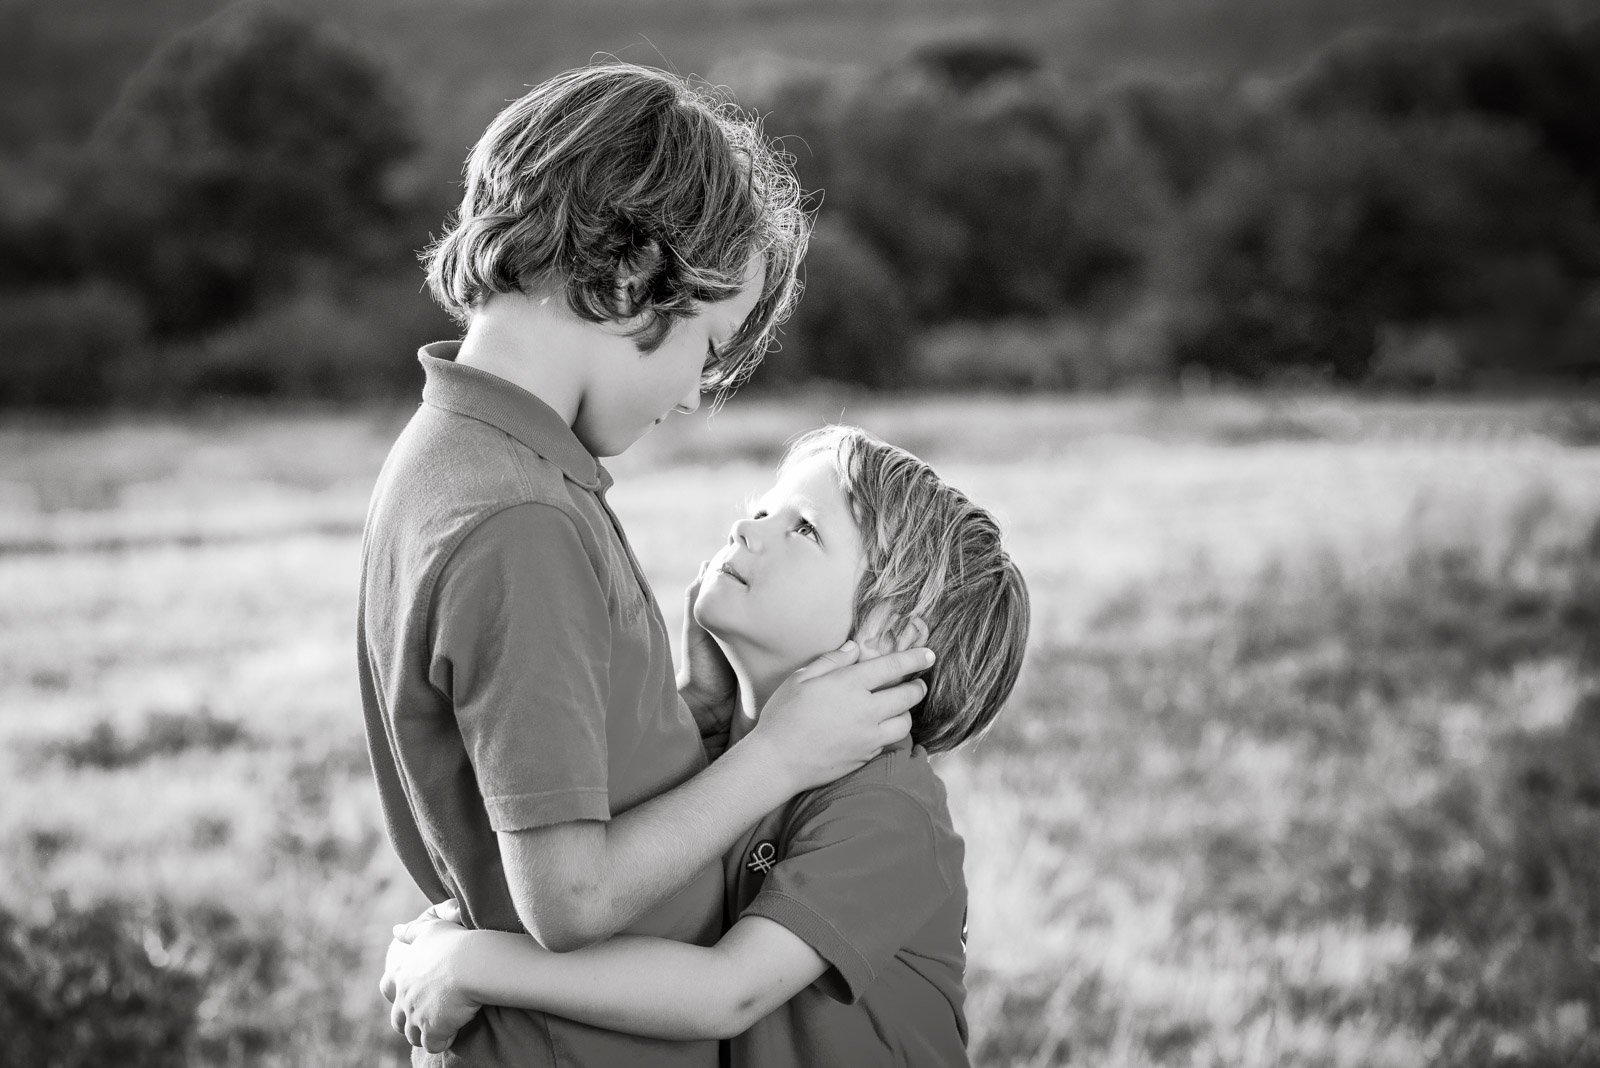 Constanze Pfeifer_schtanzerl clickin moms march forum photo contest two boys hugging black and white